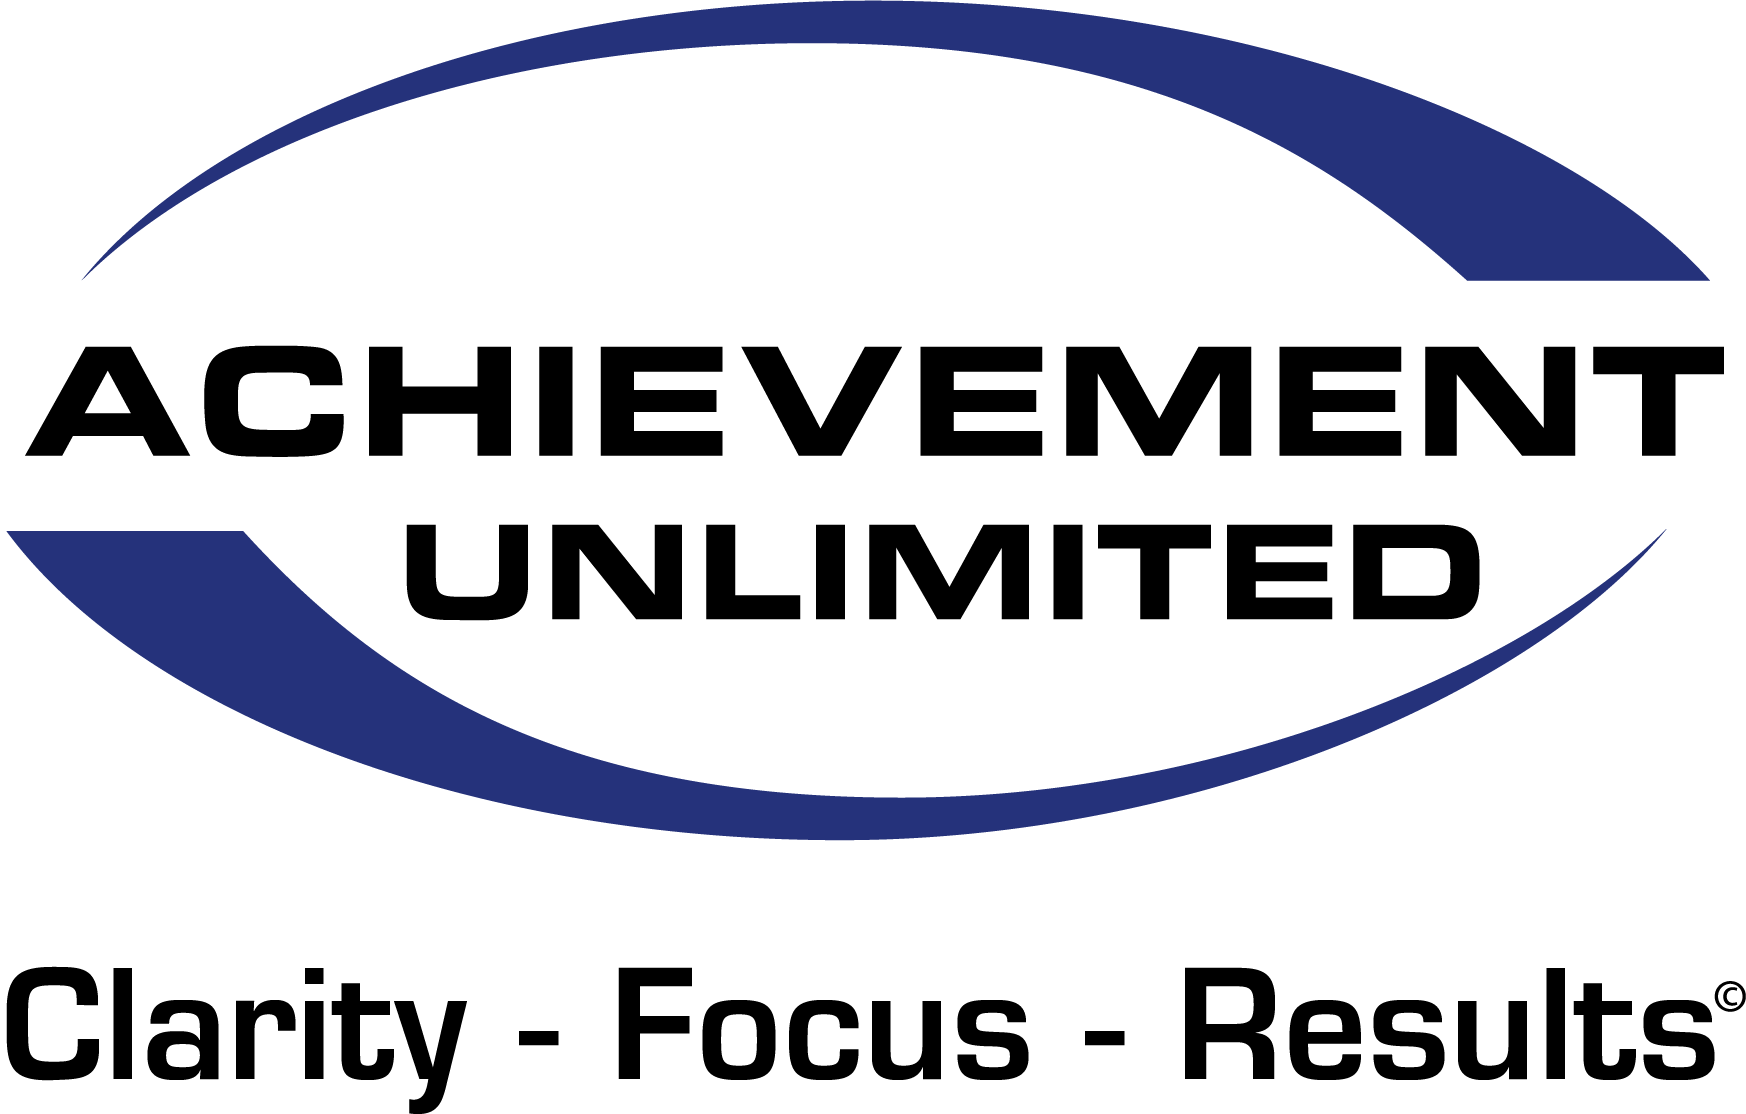 logo clarity-focus-results clear.png